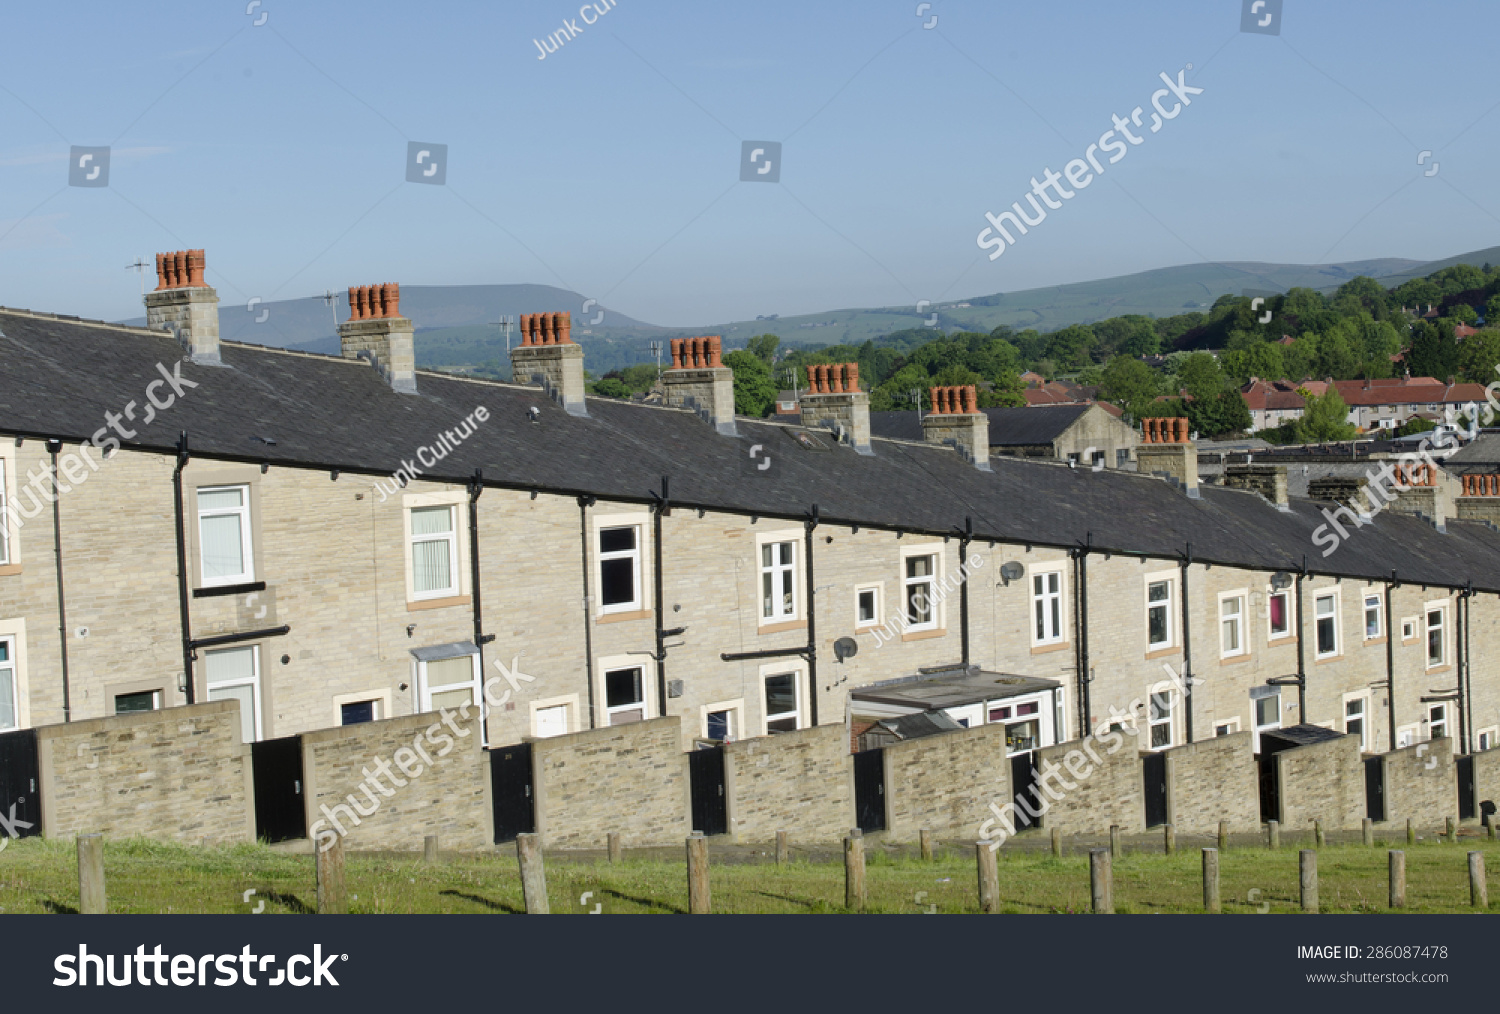 A Typical Row Of Lancashire Town Stone Facade Built And